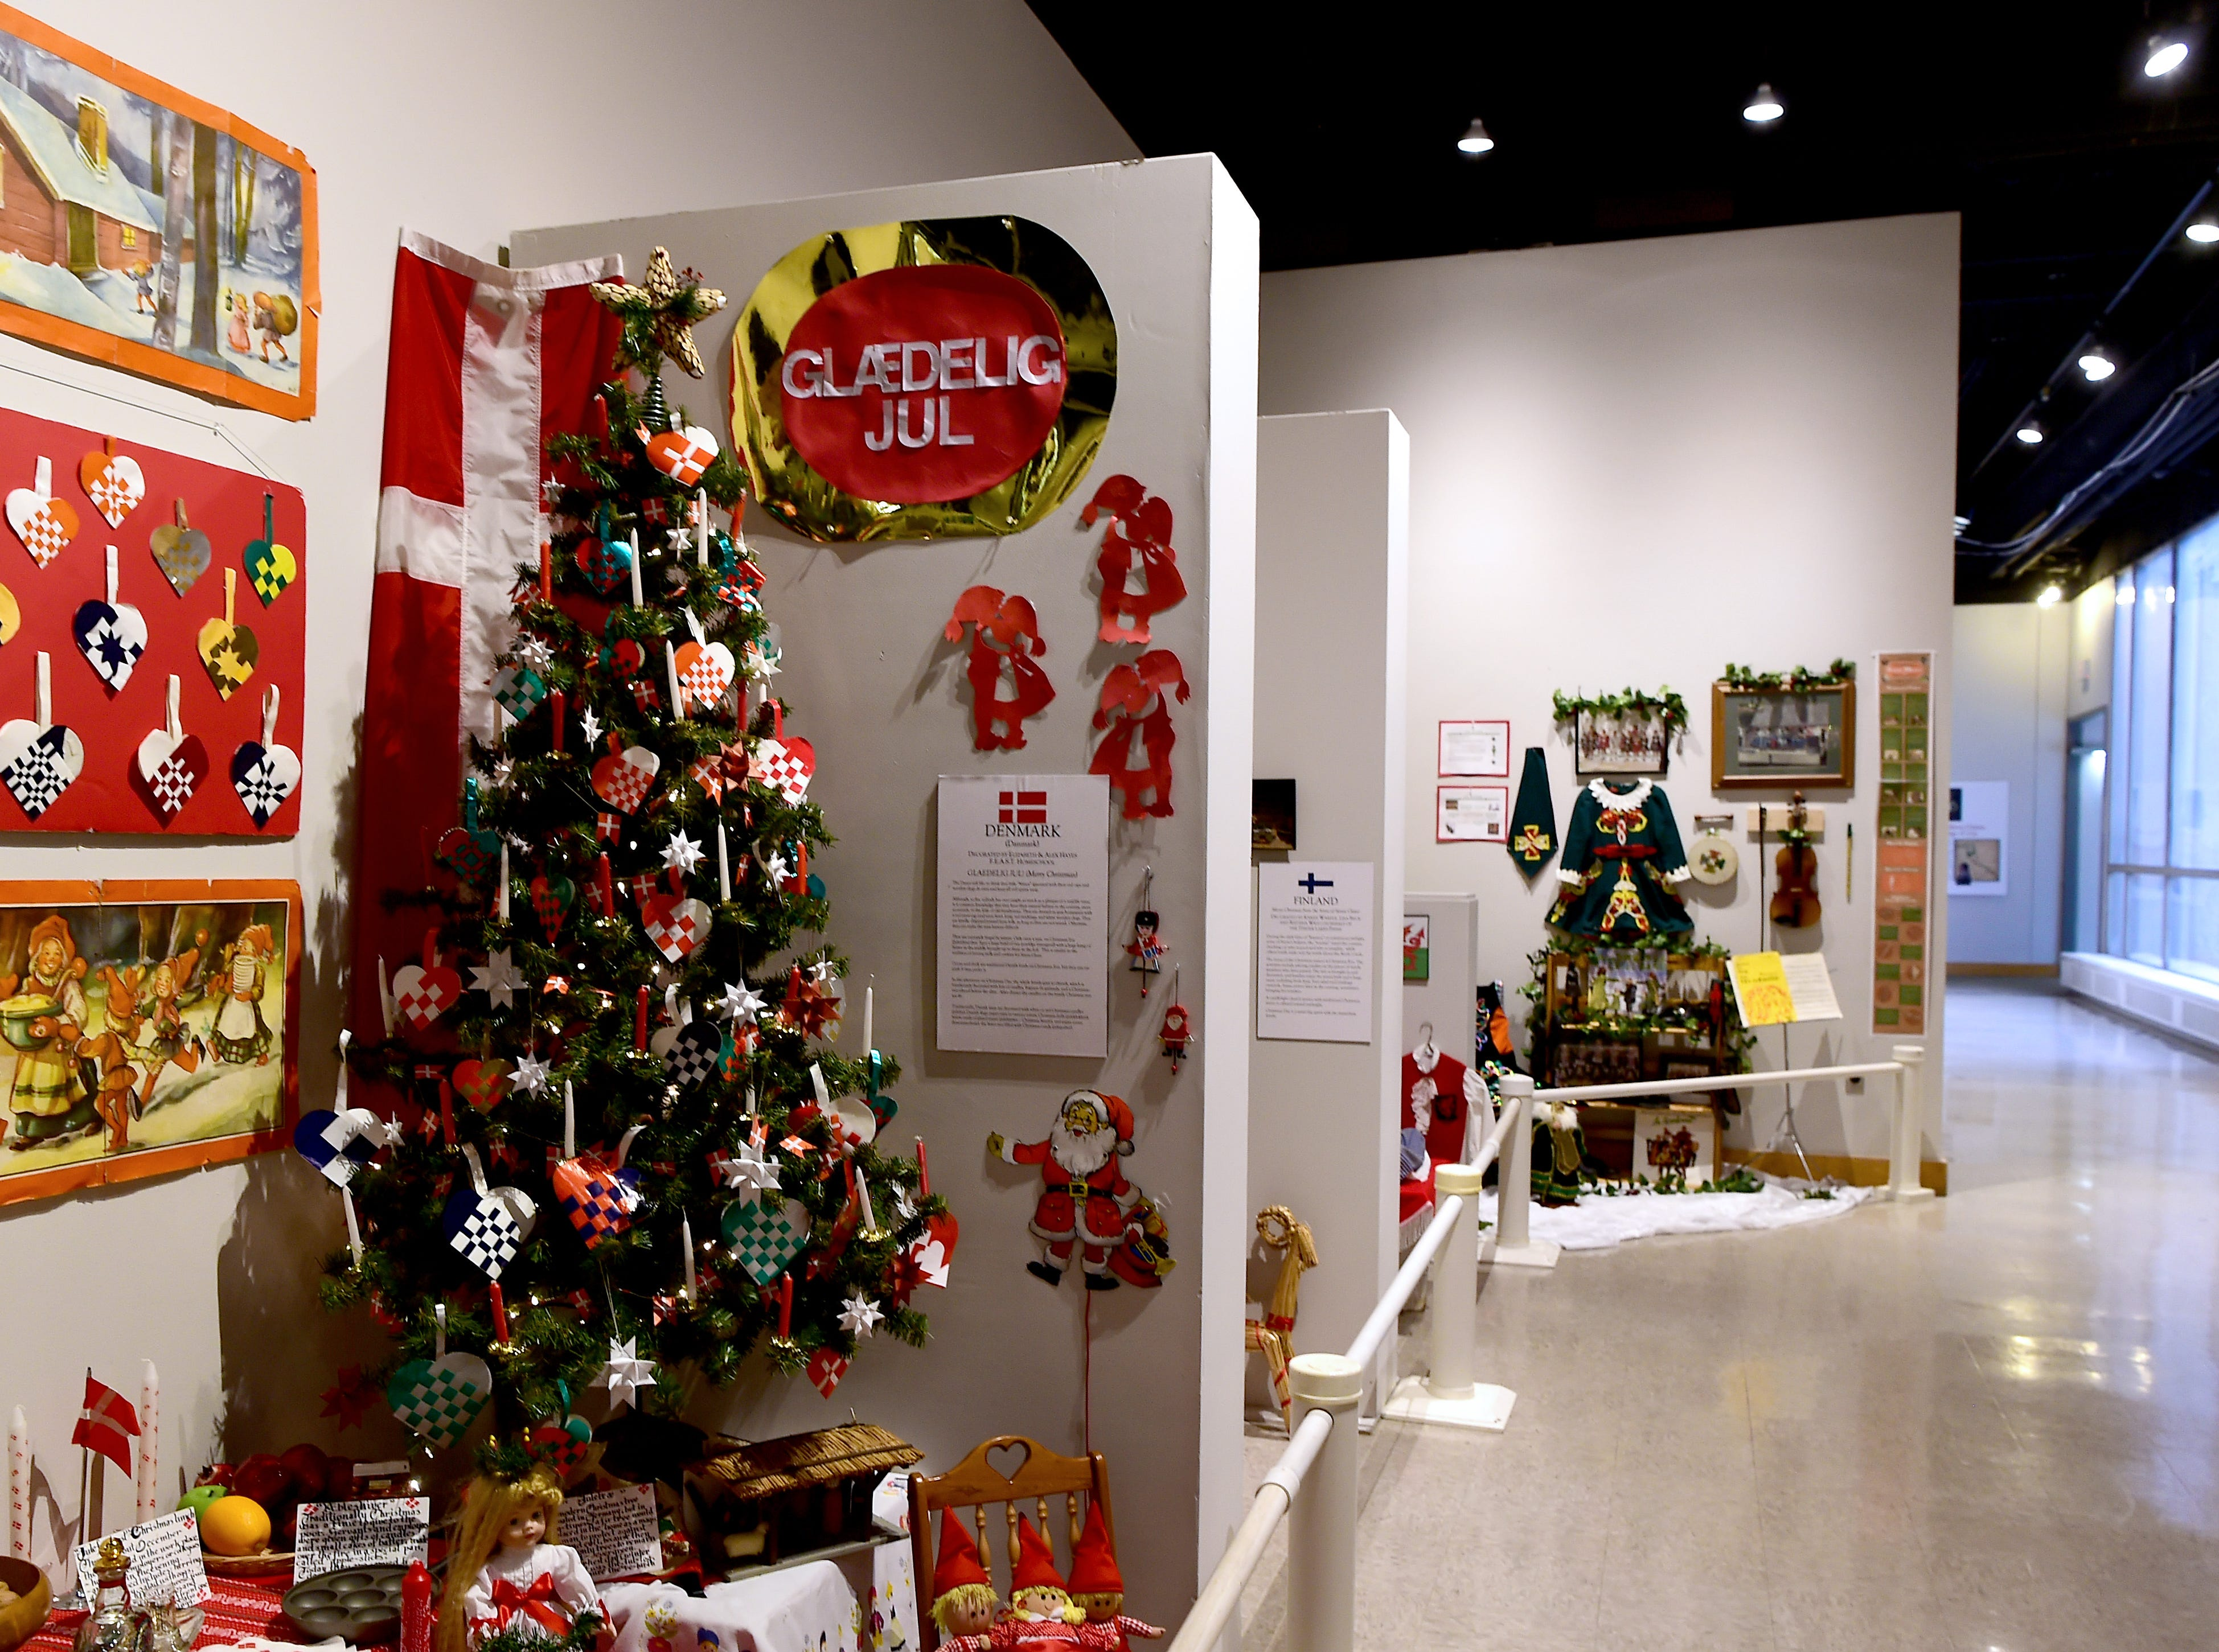 Roberson Museum and Science Center's annual Home for the Holidays event opens on November 14 and continues through January 6. The event features hundreds of elaborately decorated holiday trees and displays. November 12, 2018.